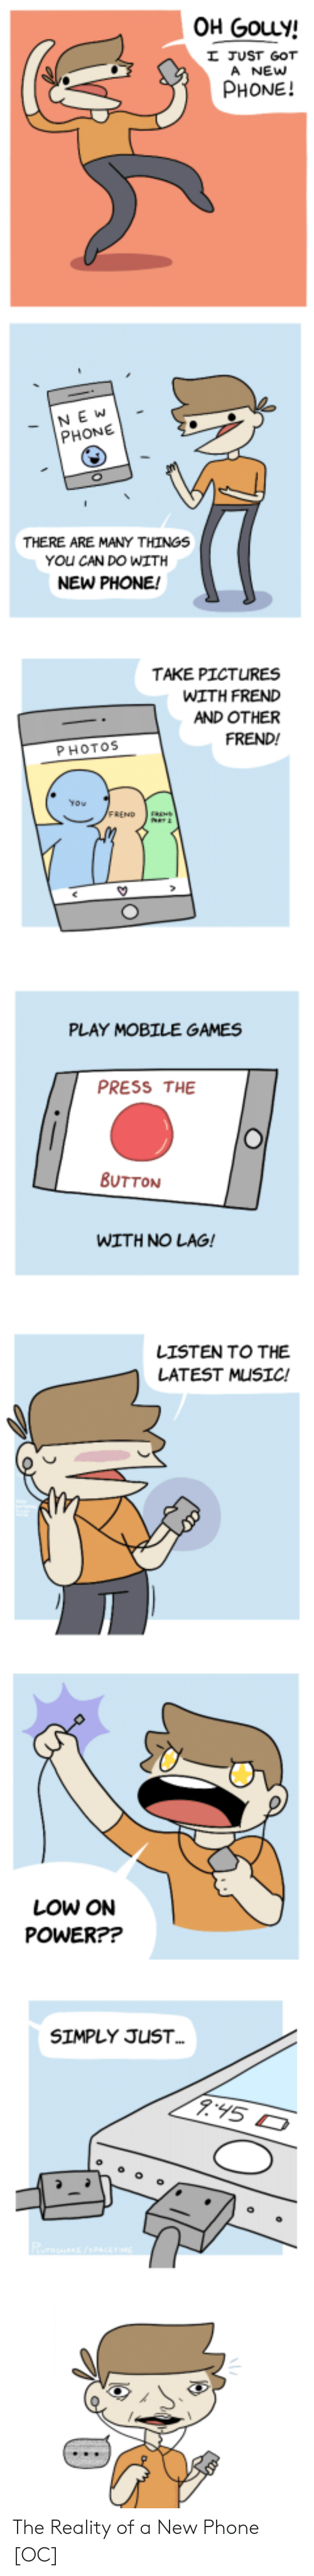 mobile games: OH GouLy!  JUST GOT  A NEw  PHONE!  NE W  PHONE  THERE ARE MANY THINGS  YOu CAN DO WITH  NEW PHONE!  TAKE PICTURES  WITH FRED  AND OTHER  FREND!  PHOTOS  PLAY MOBILE GAMES  PRESS THE  BUTTON  WITH NO LAG!  LISTEN TO THE  LATEST MUSIC!  LOW ON  POWER??  SIMPLY JUST The Reality of a New Phone [OC]